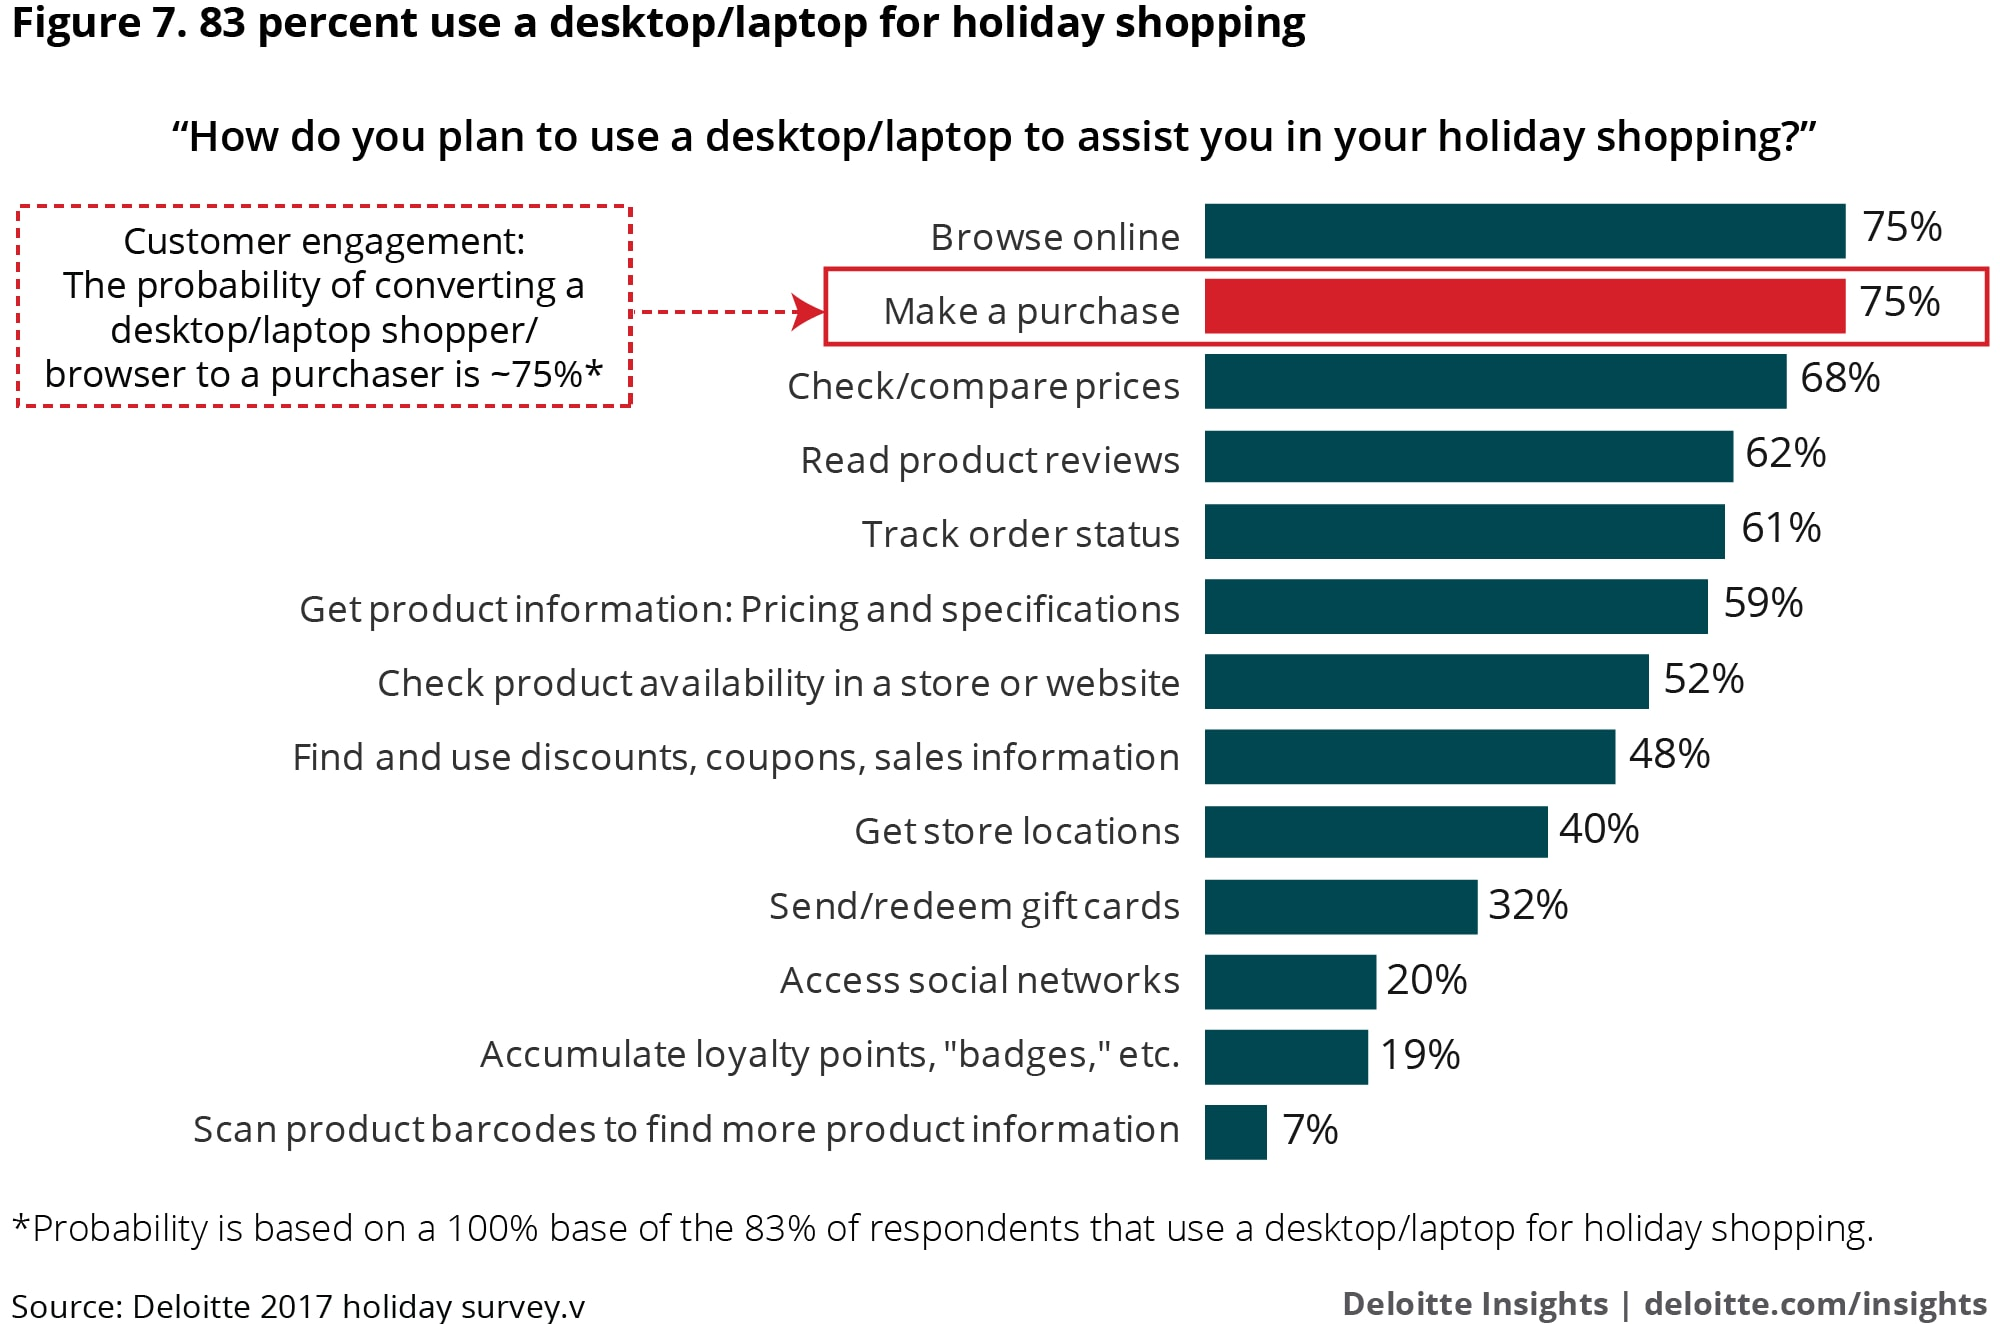 Desktop and laptop usage for holiday shopping